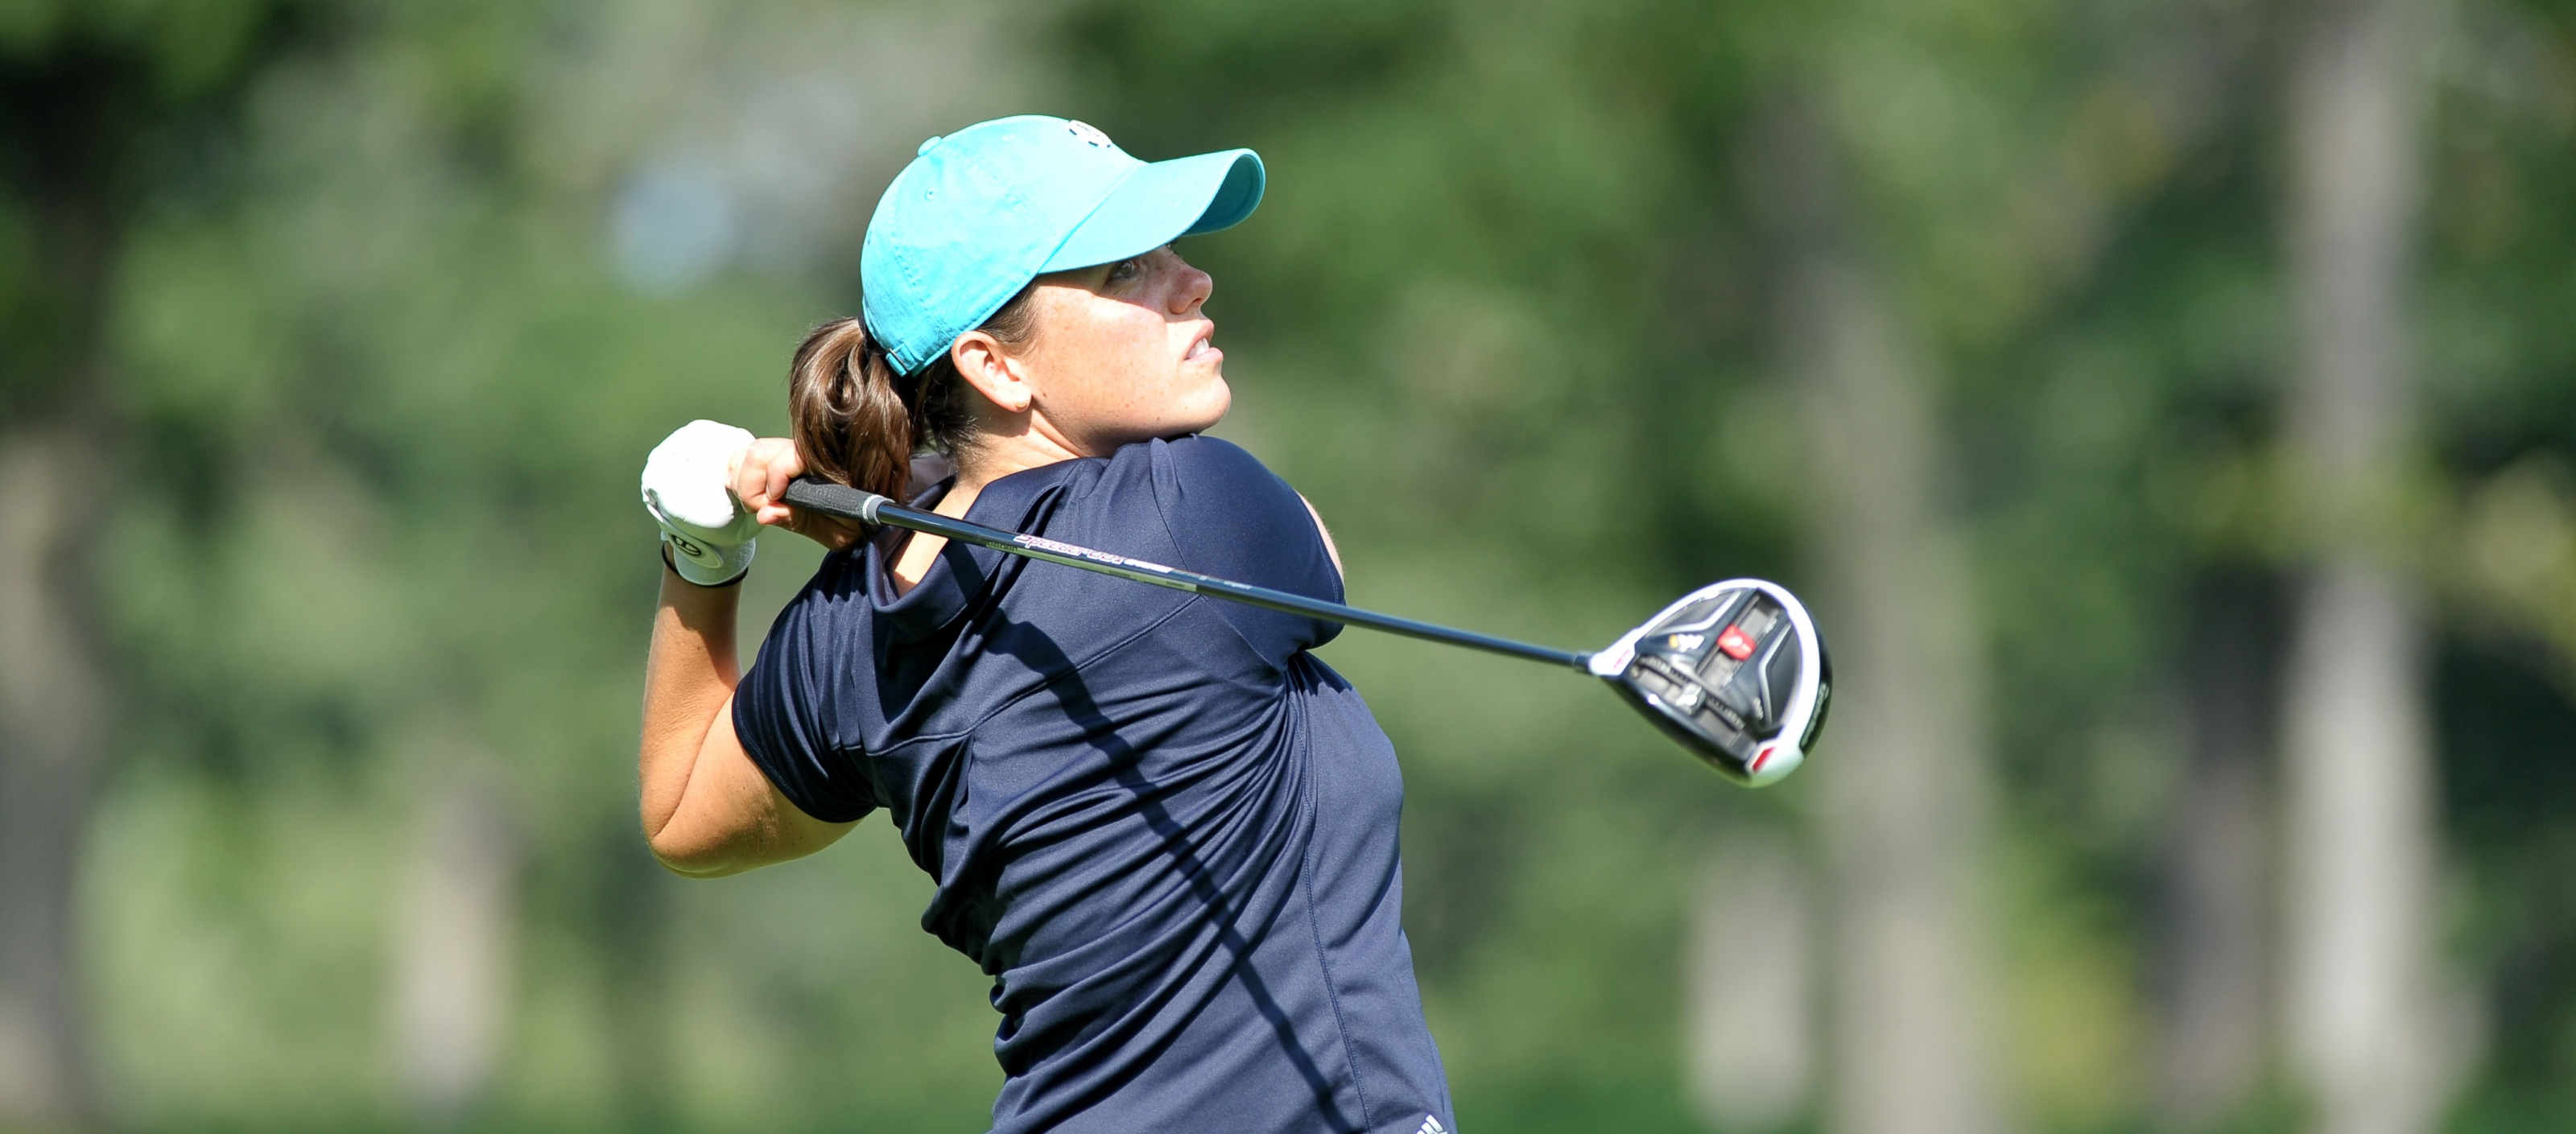 Katie Pius, Assistant PGA Professional at Biltmore CC, has 16 Top 20 finishes in the past five years